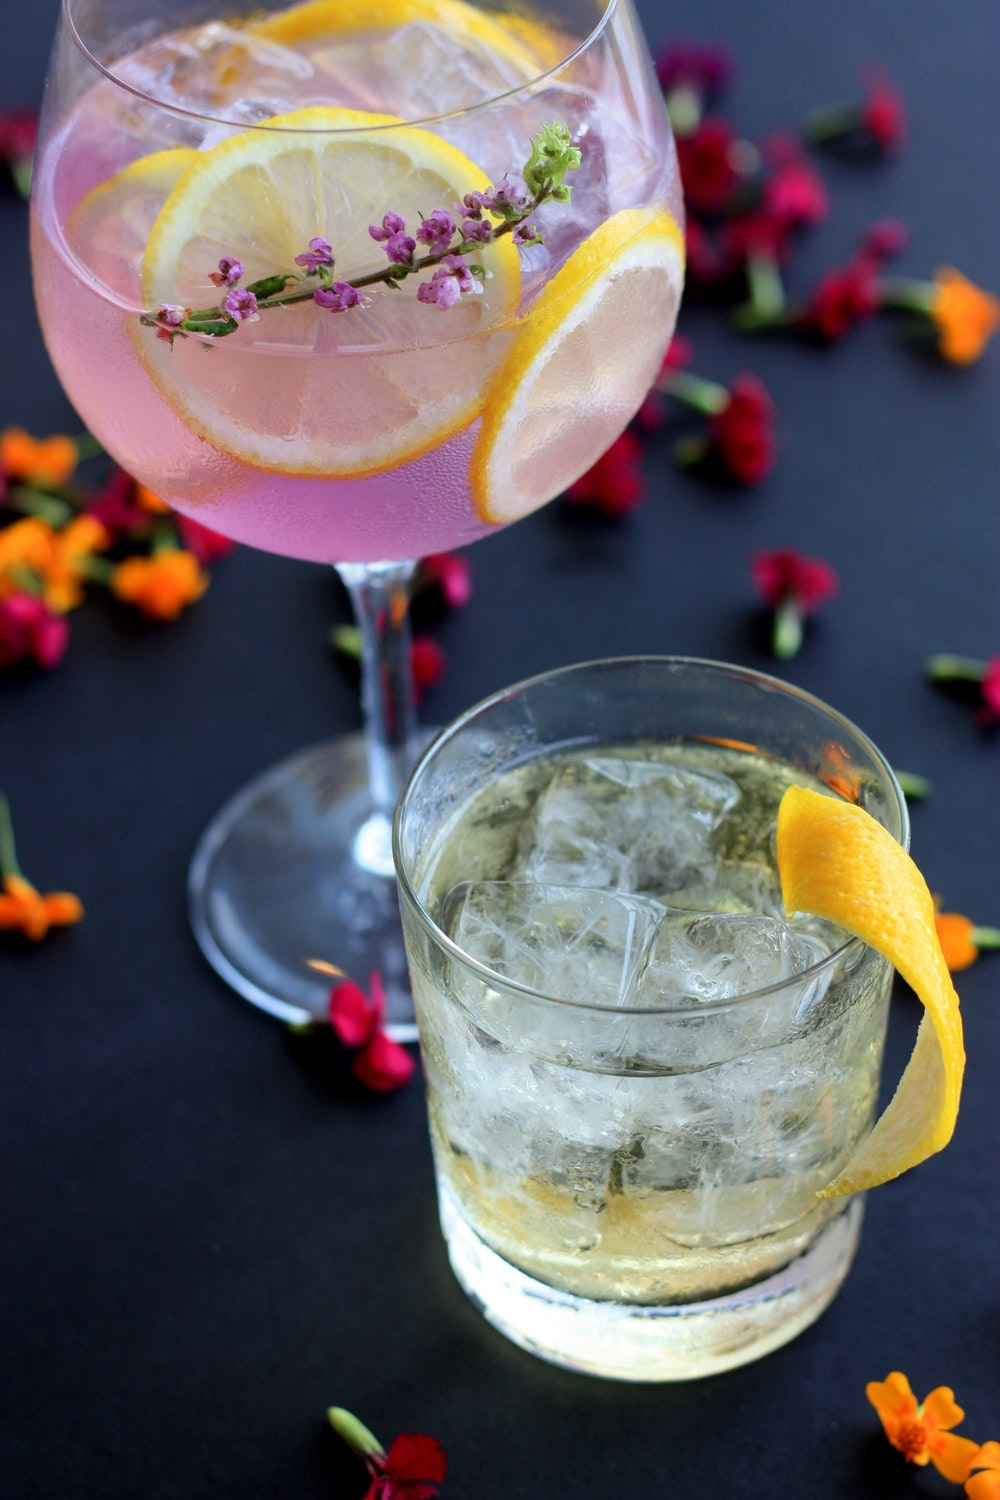 World Gin Day - Where To Celebrate: Bluebird Cafe White City's Strawberry Fields Cocktail Menu